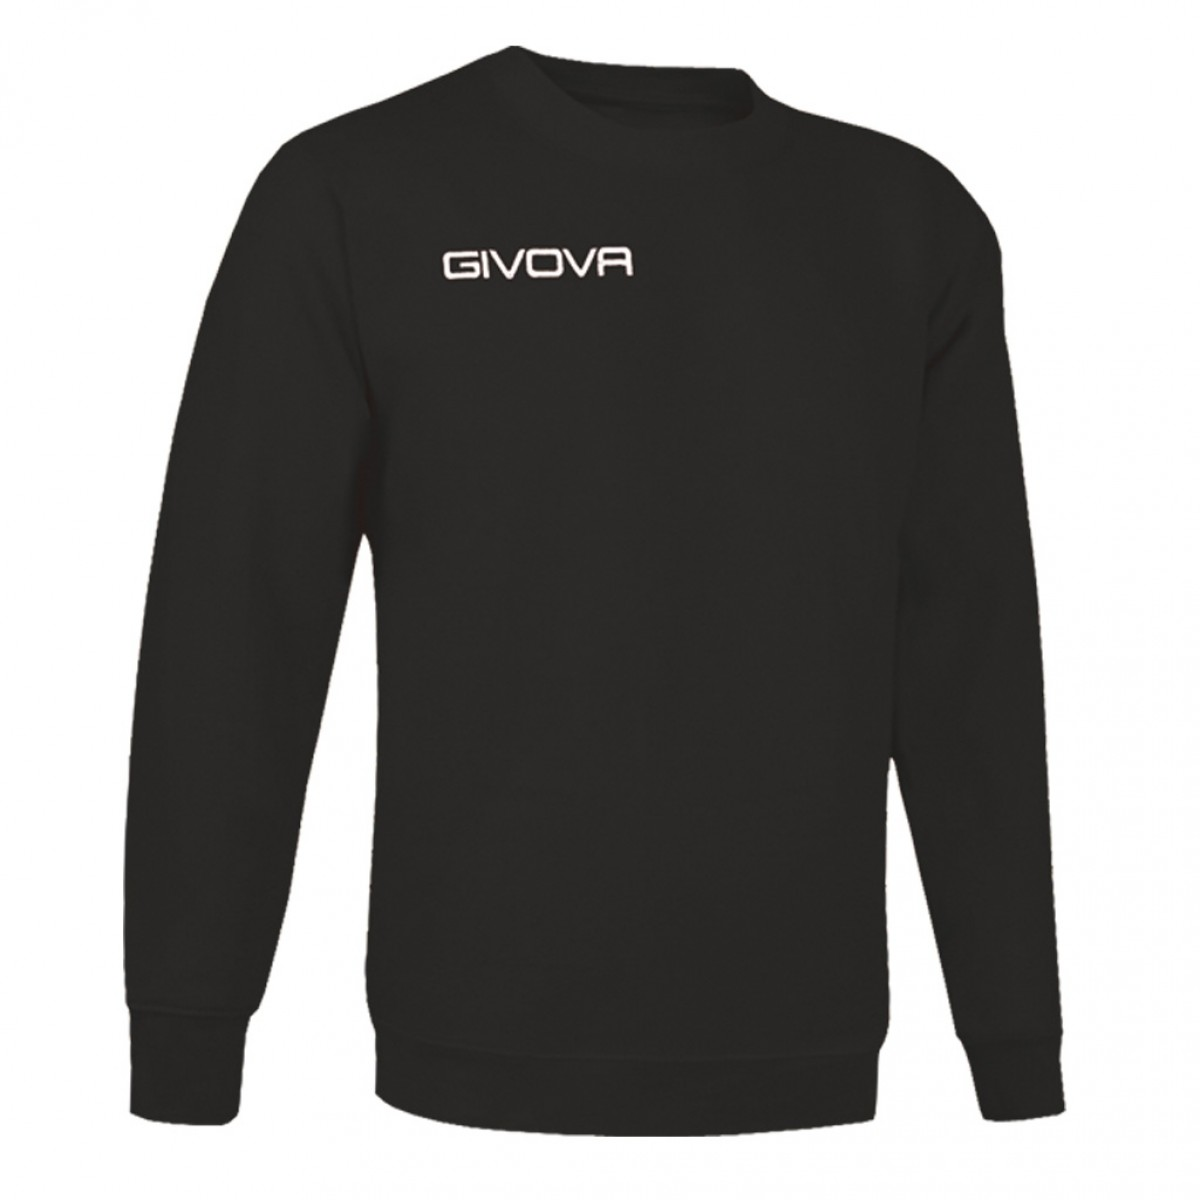 Givova One sweatshirt sort